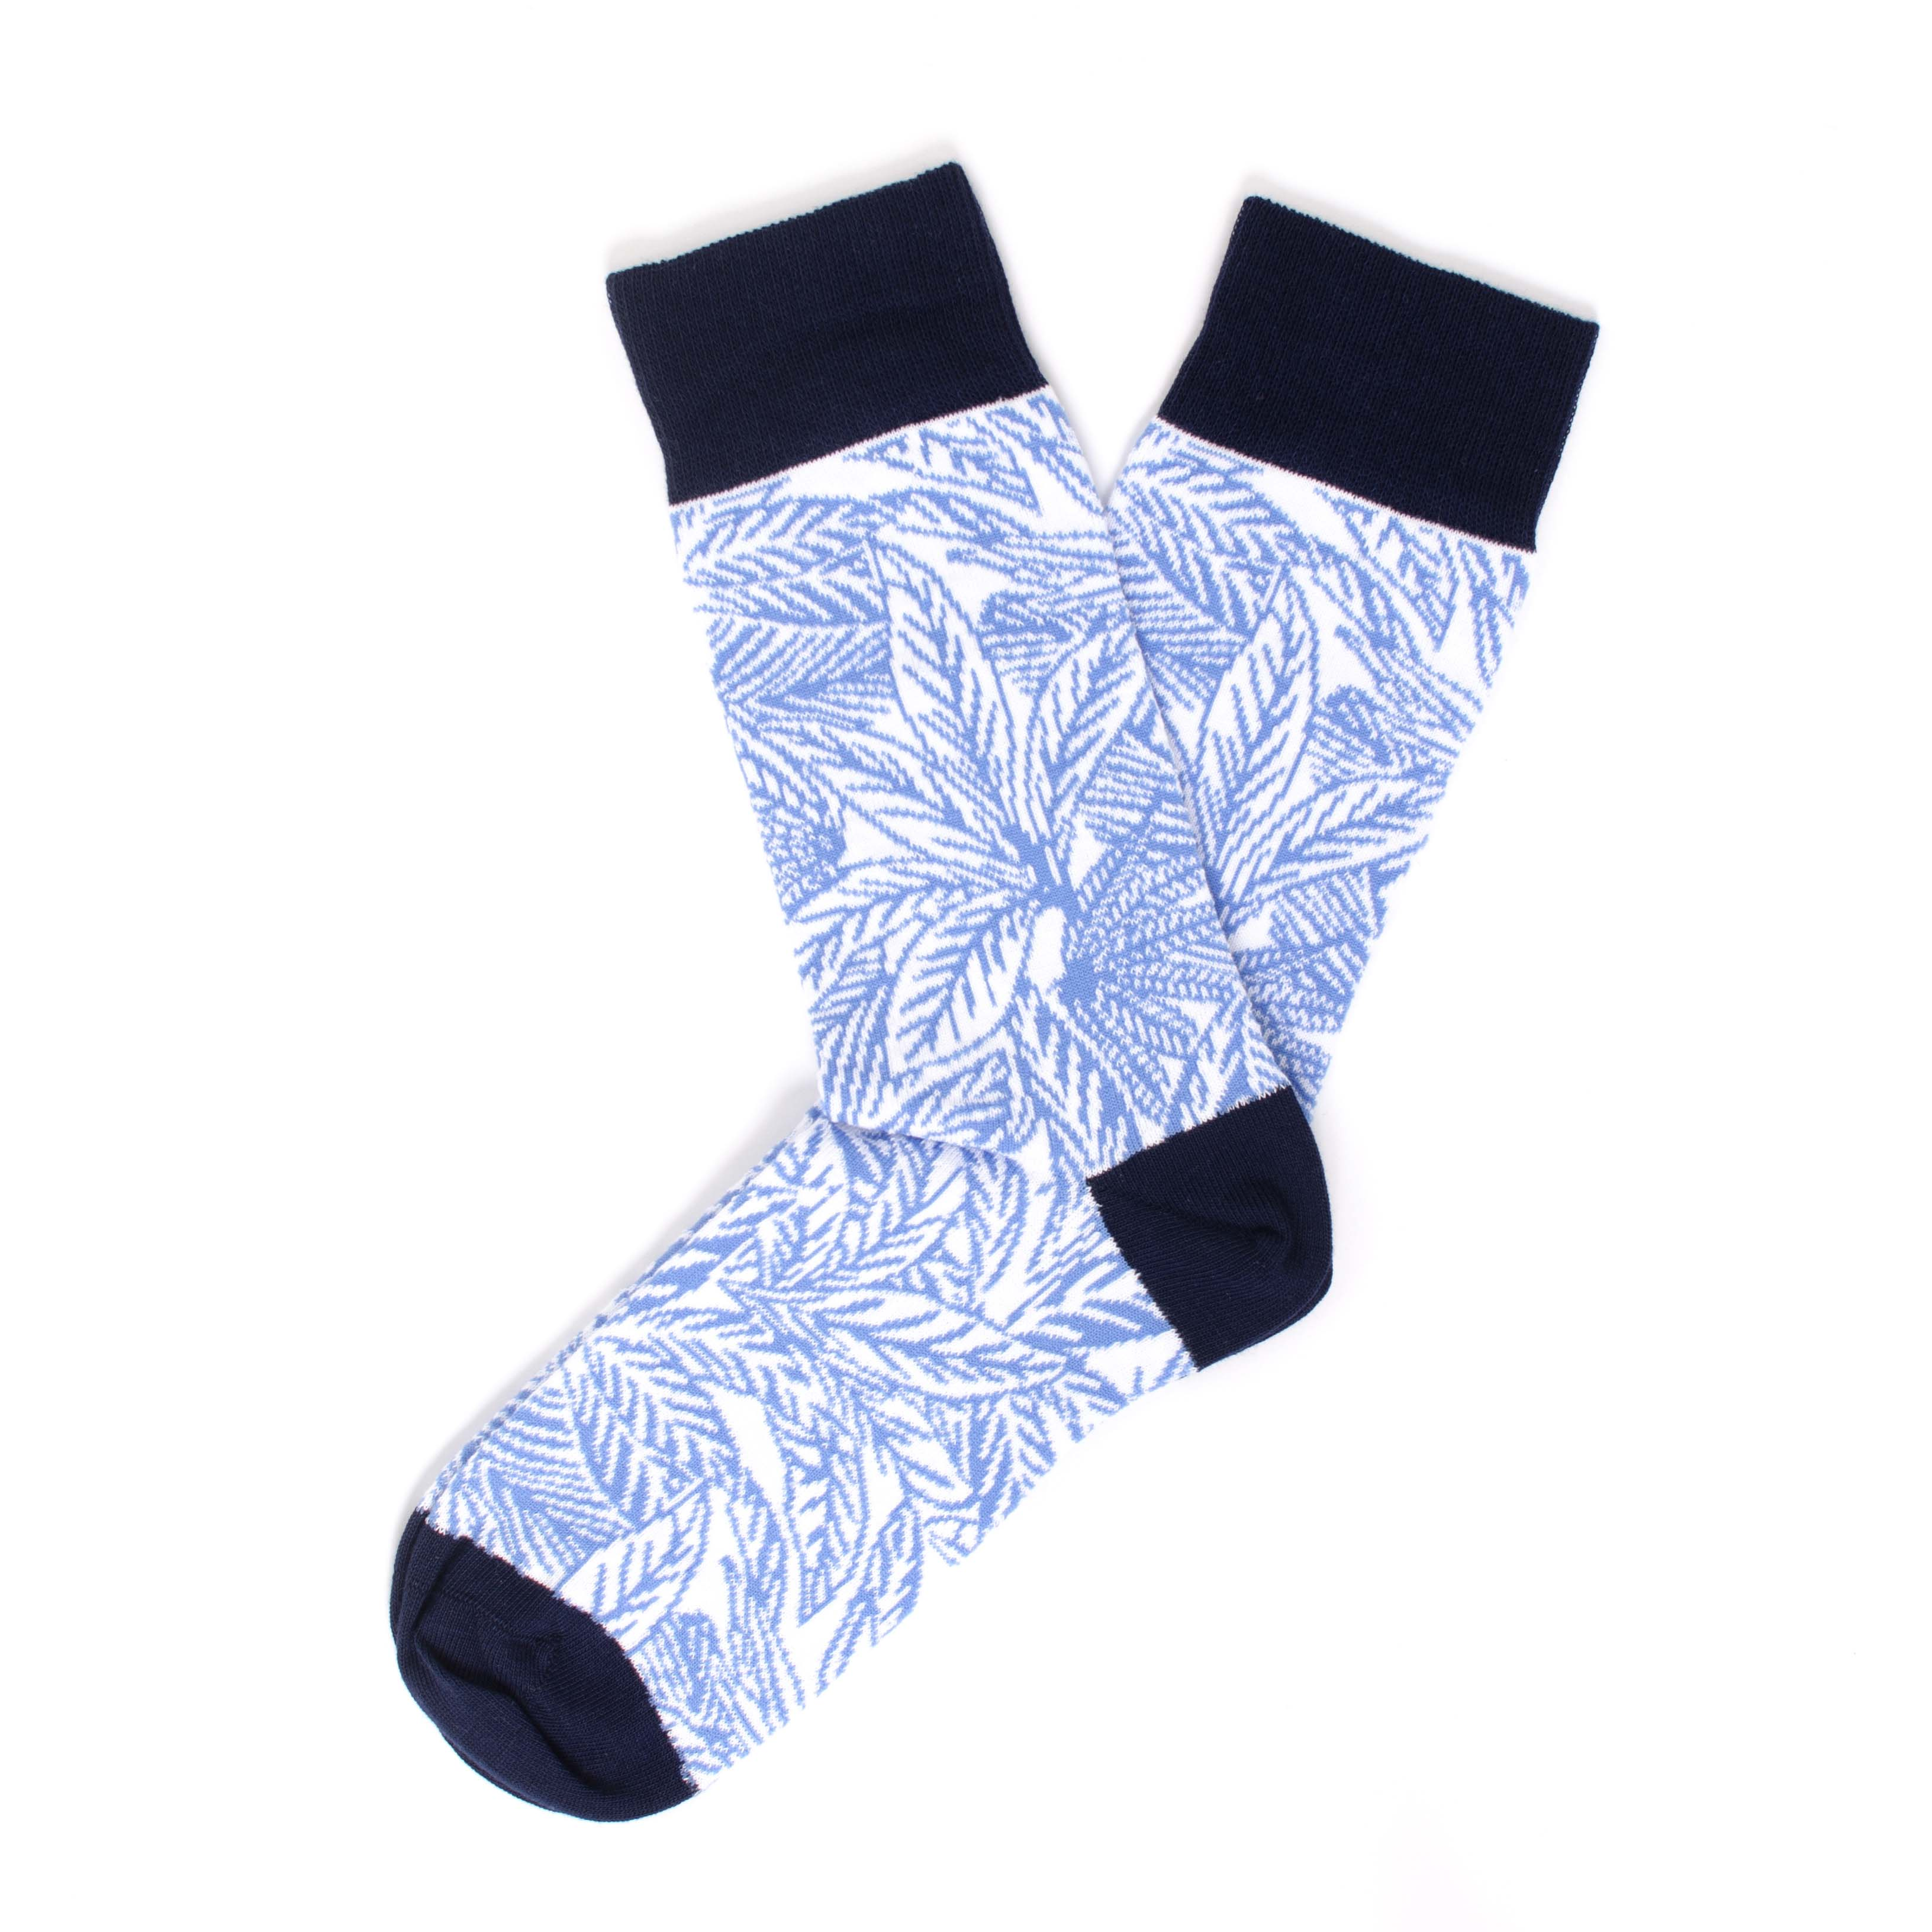 White socks with leaves design